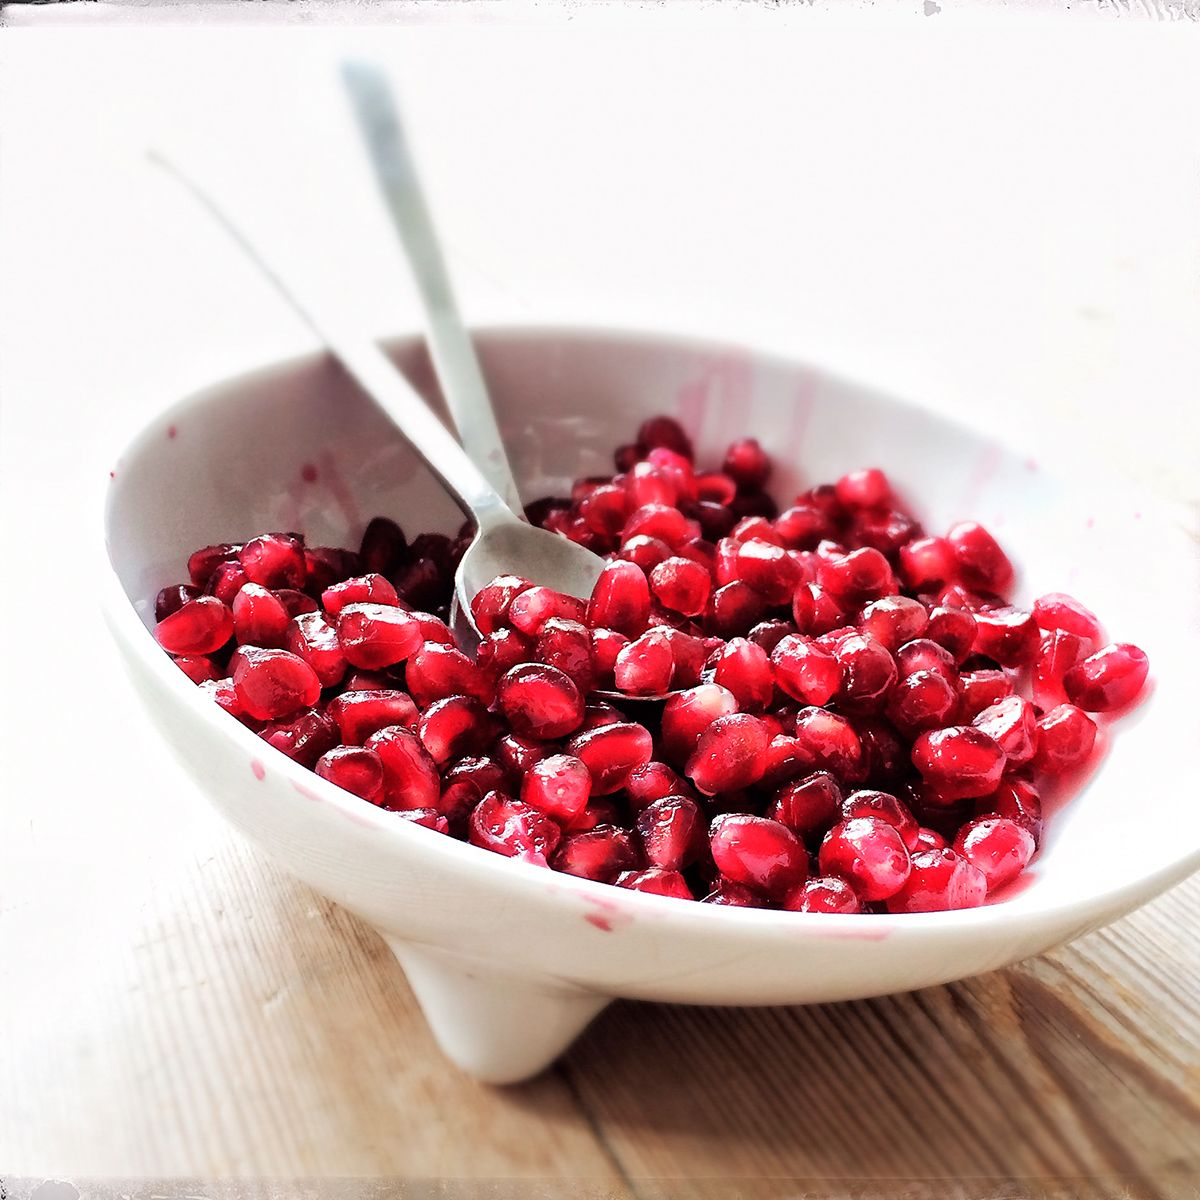 Pomegranate Juice Stain Removal How To Remove Stains